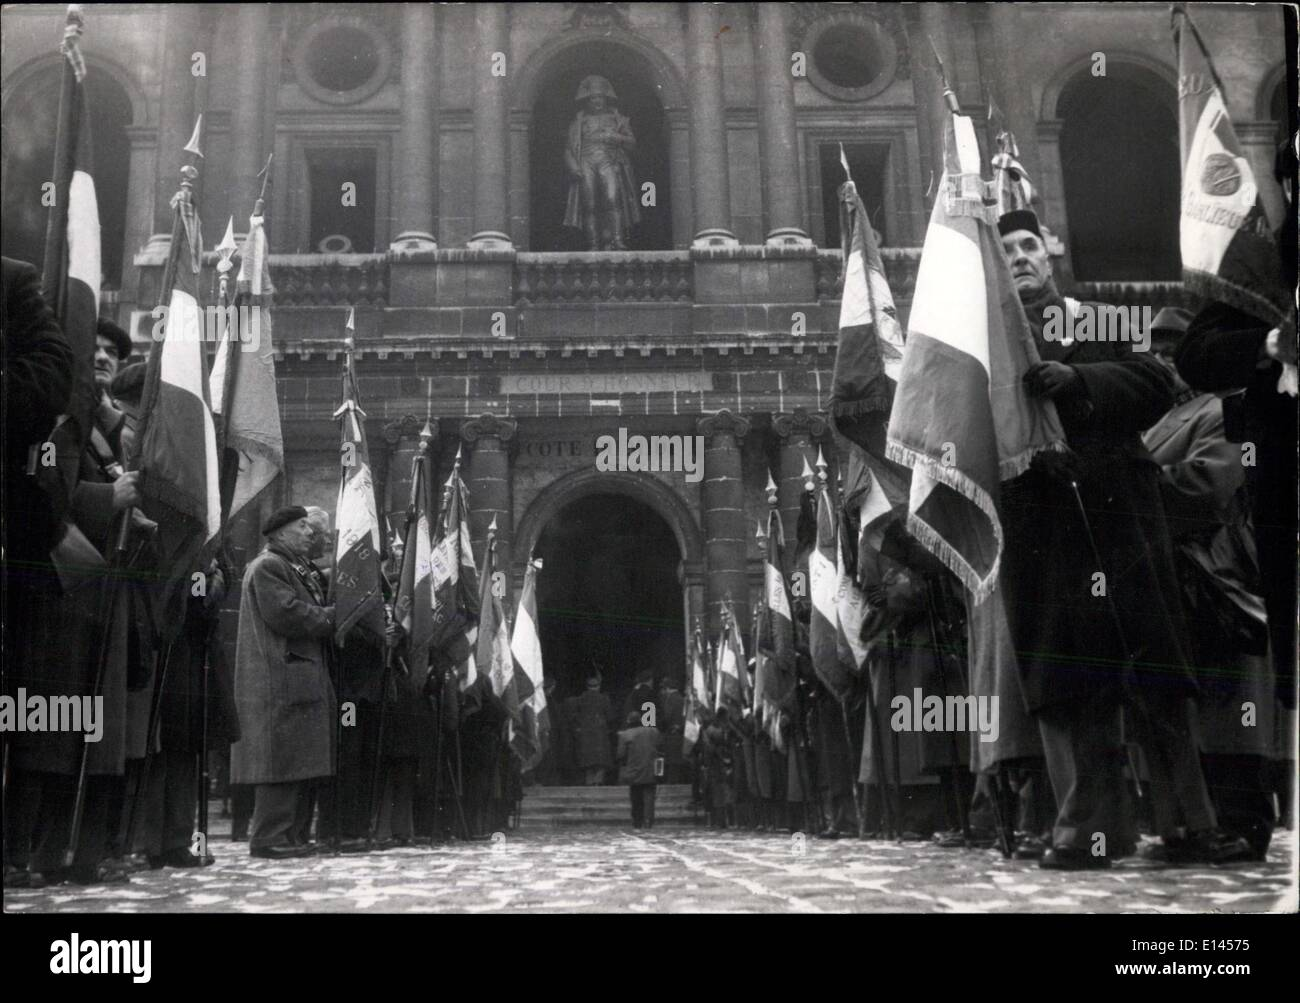 Apr. 04, 2012 - Verdun Battle Commemorated: Ex-Servicemen of World war No.1 with the flags of Disbanded Regiments in the court yard of the Invalides where a ceremony was held this morning on the occasion of the 39th Anniversary of the battle of Verdon. - Stock Image